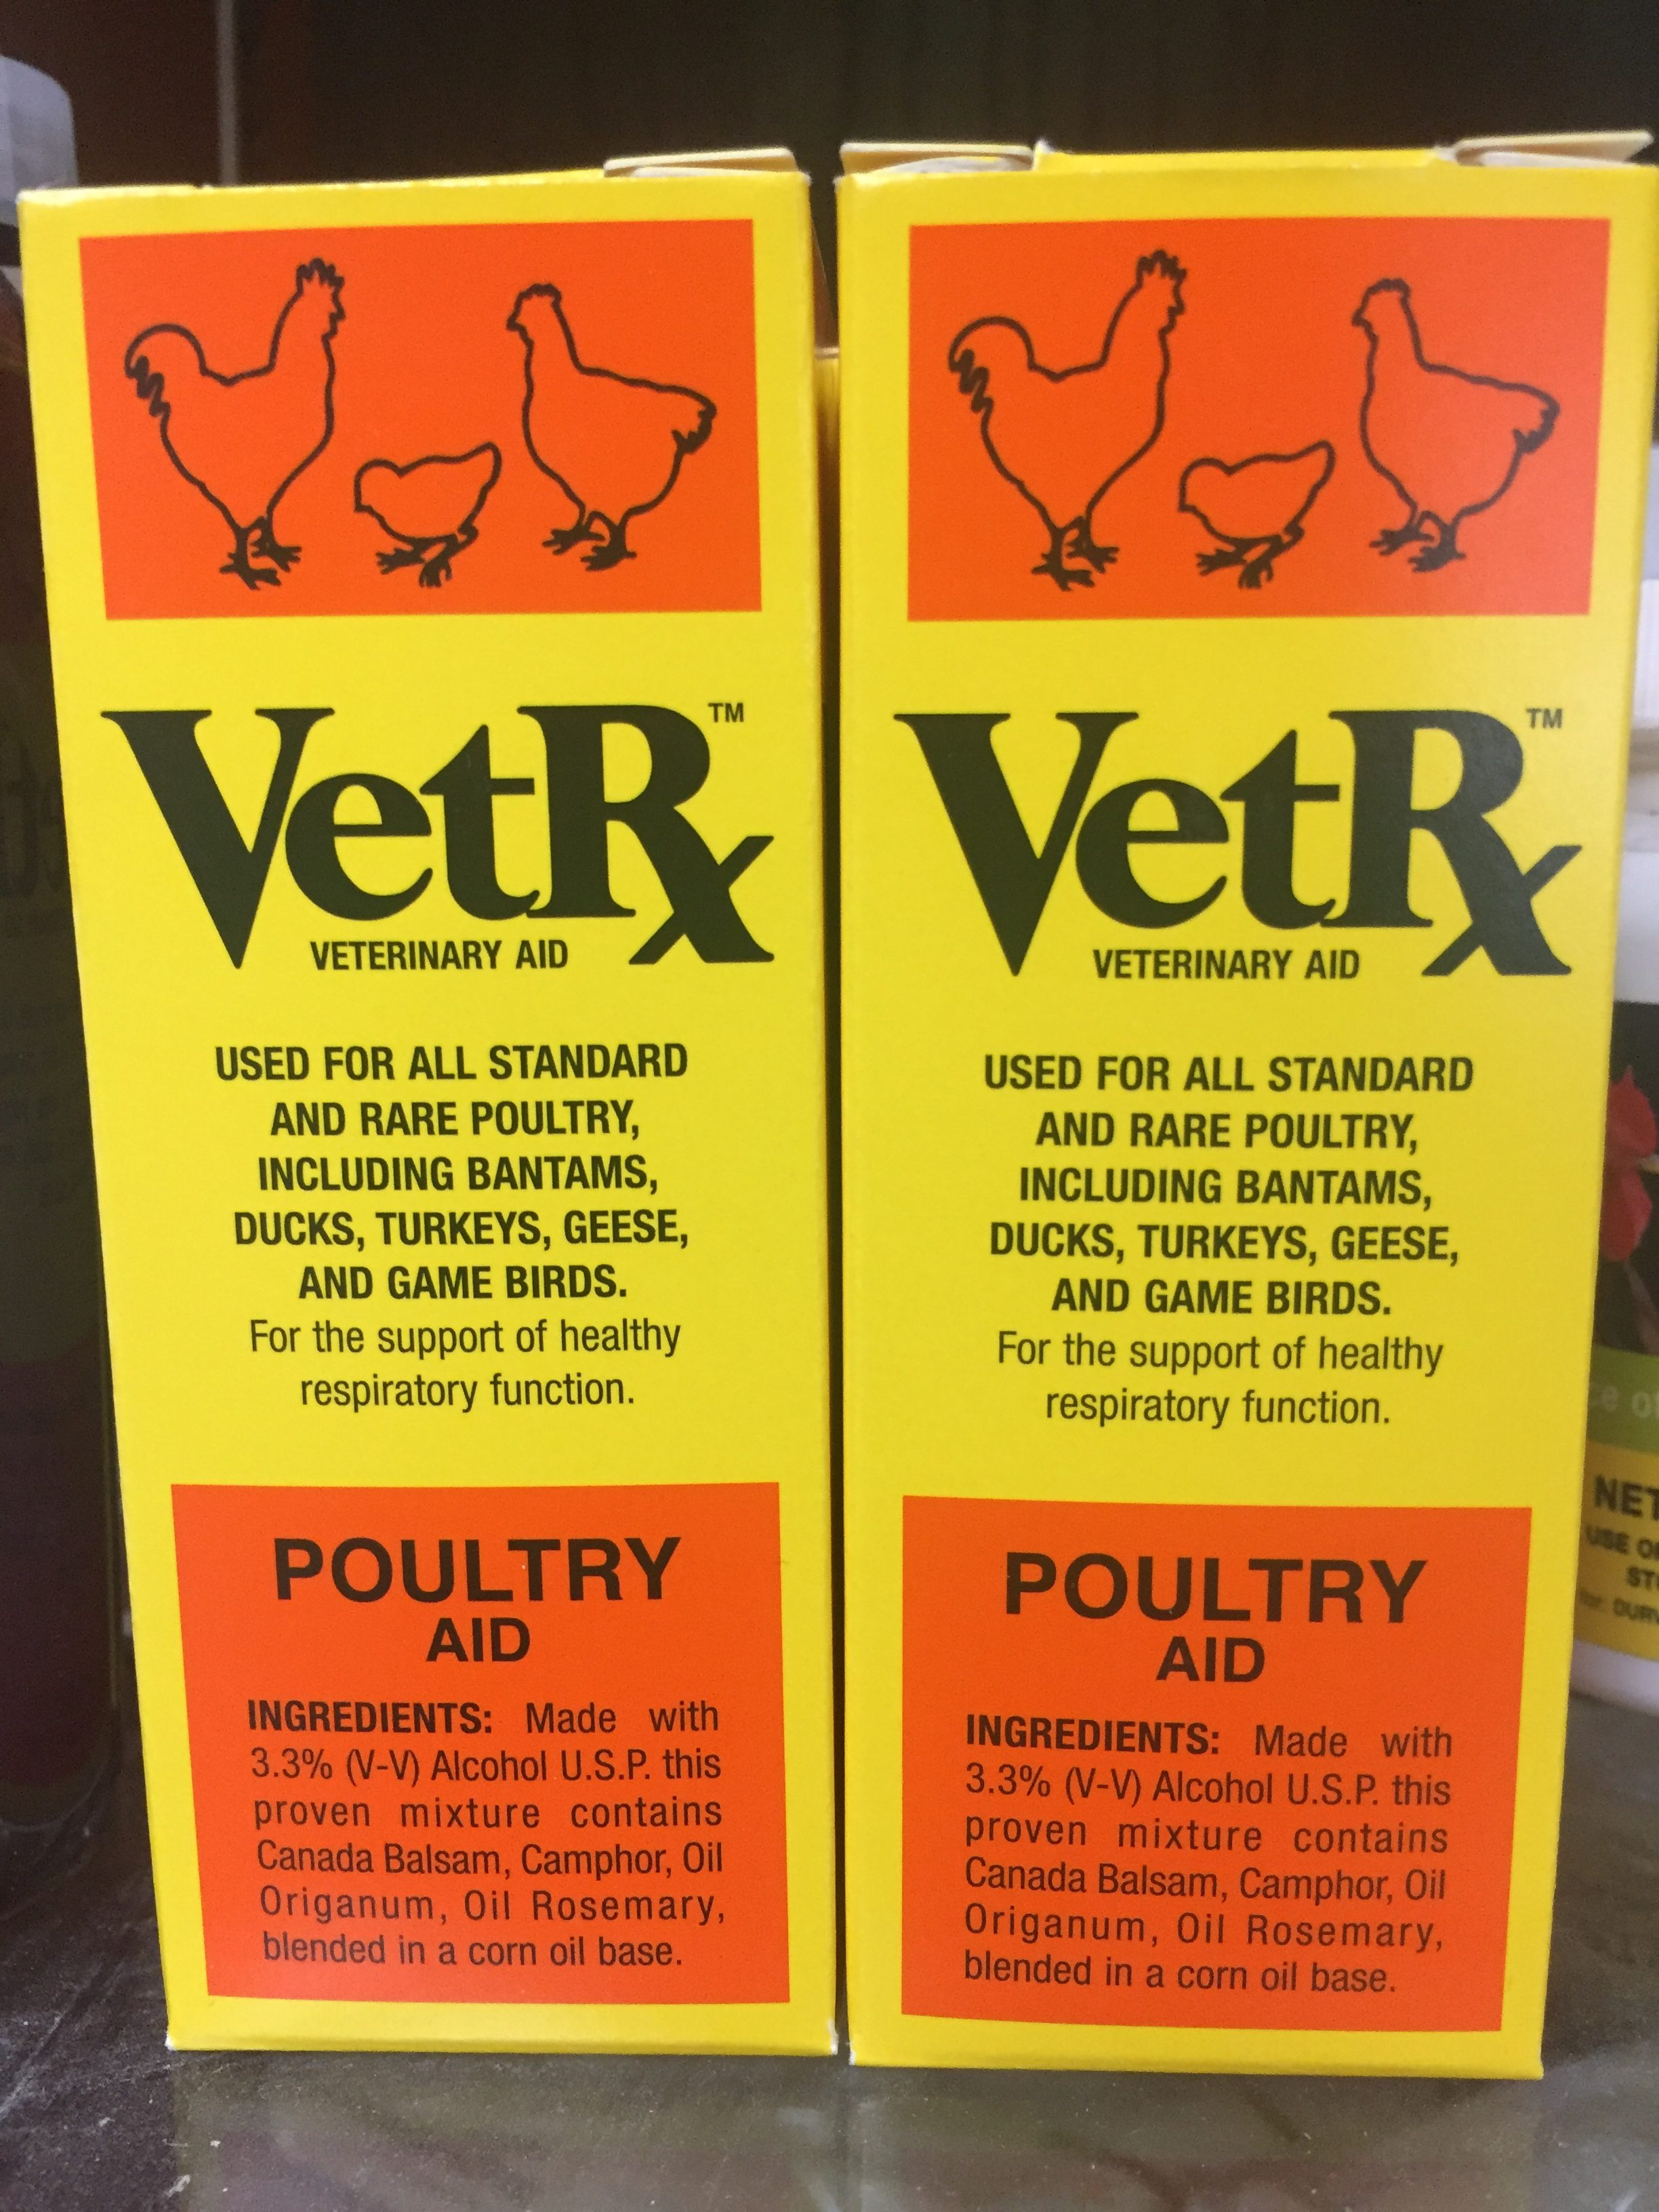 For use as an aid in the treatment of respiratory problems in all varieties of poultry.